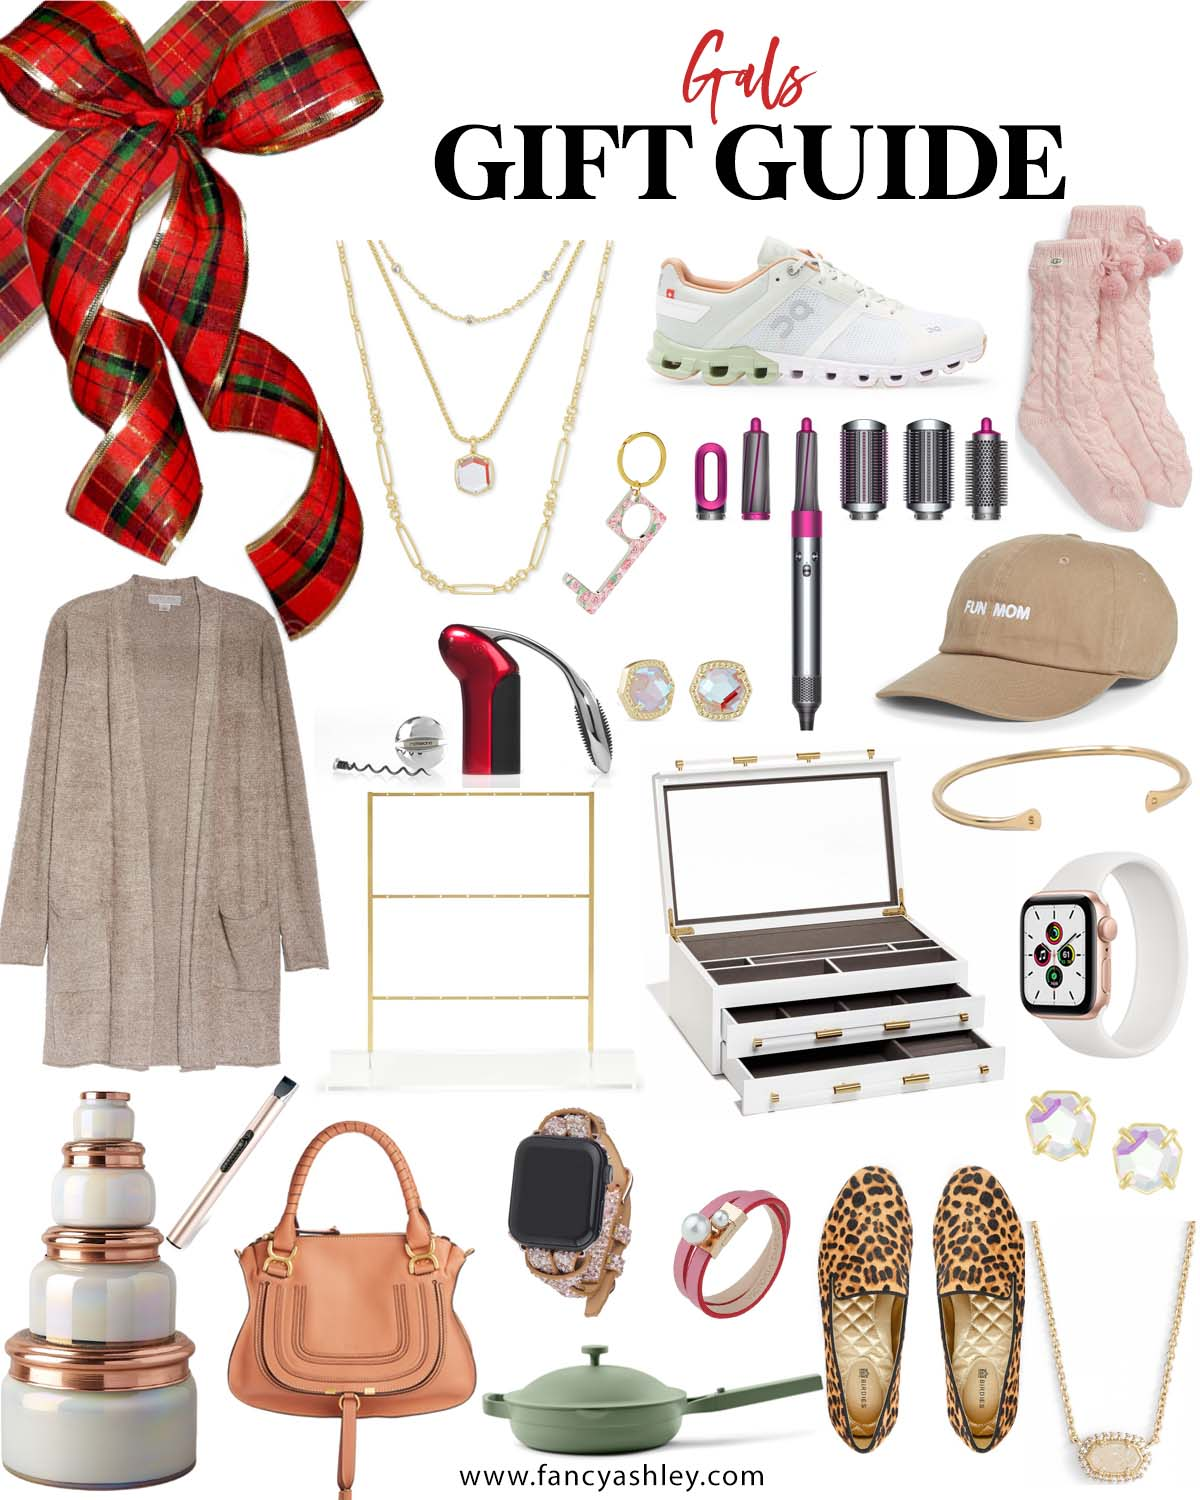 Gift Ideas for Women by popular Houston life and style blog, Fancy Ashley: collage image of a cardigan duster, Dyson hair style tool, sneakers, pink socks, no touch key ring, hat, leopard print flats, candle set, apple watch band, Kendra Scott earrings and necklace, wrap bracelet, orange purse, jewelry organizer, lighter, and a Always pan.